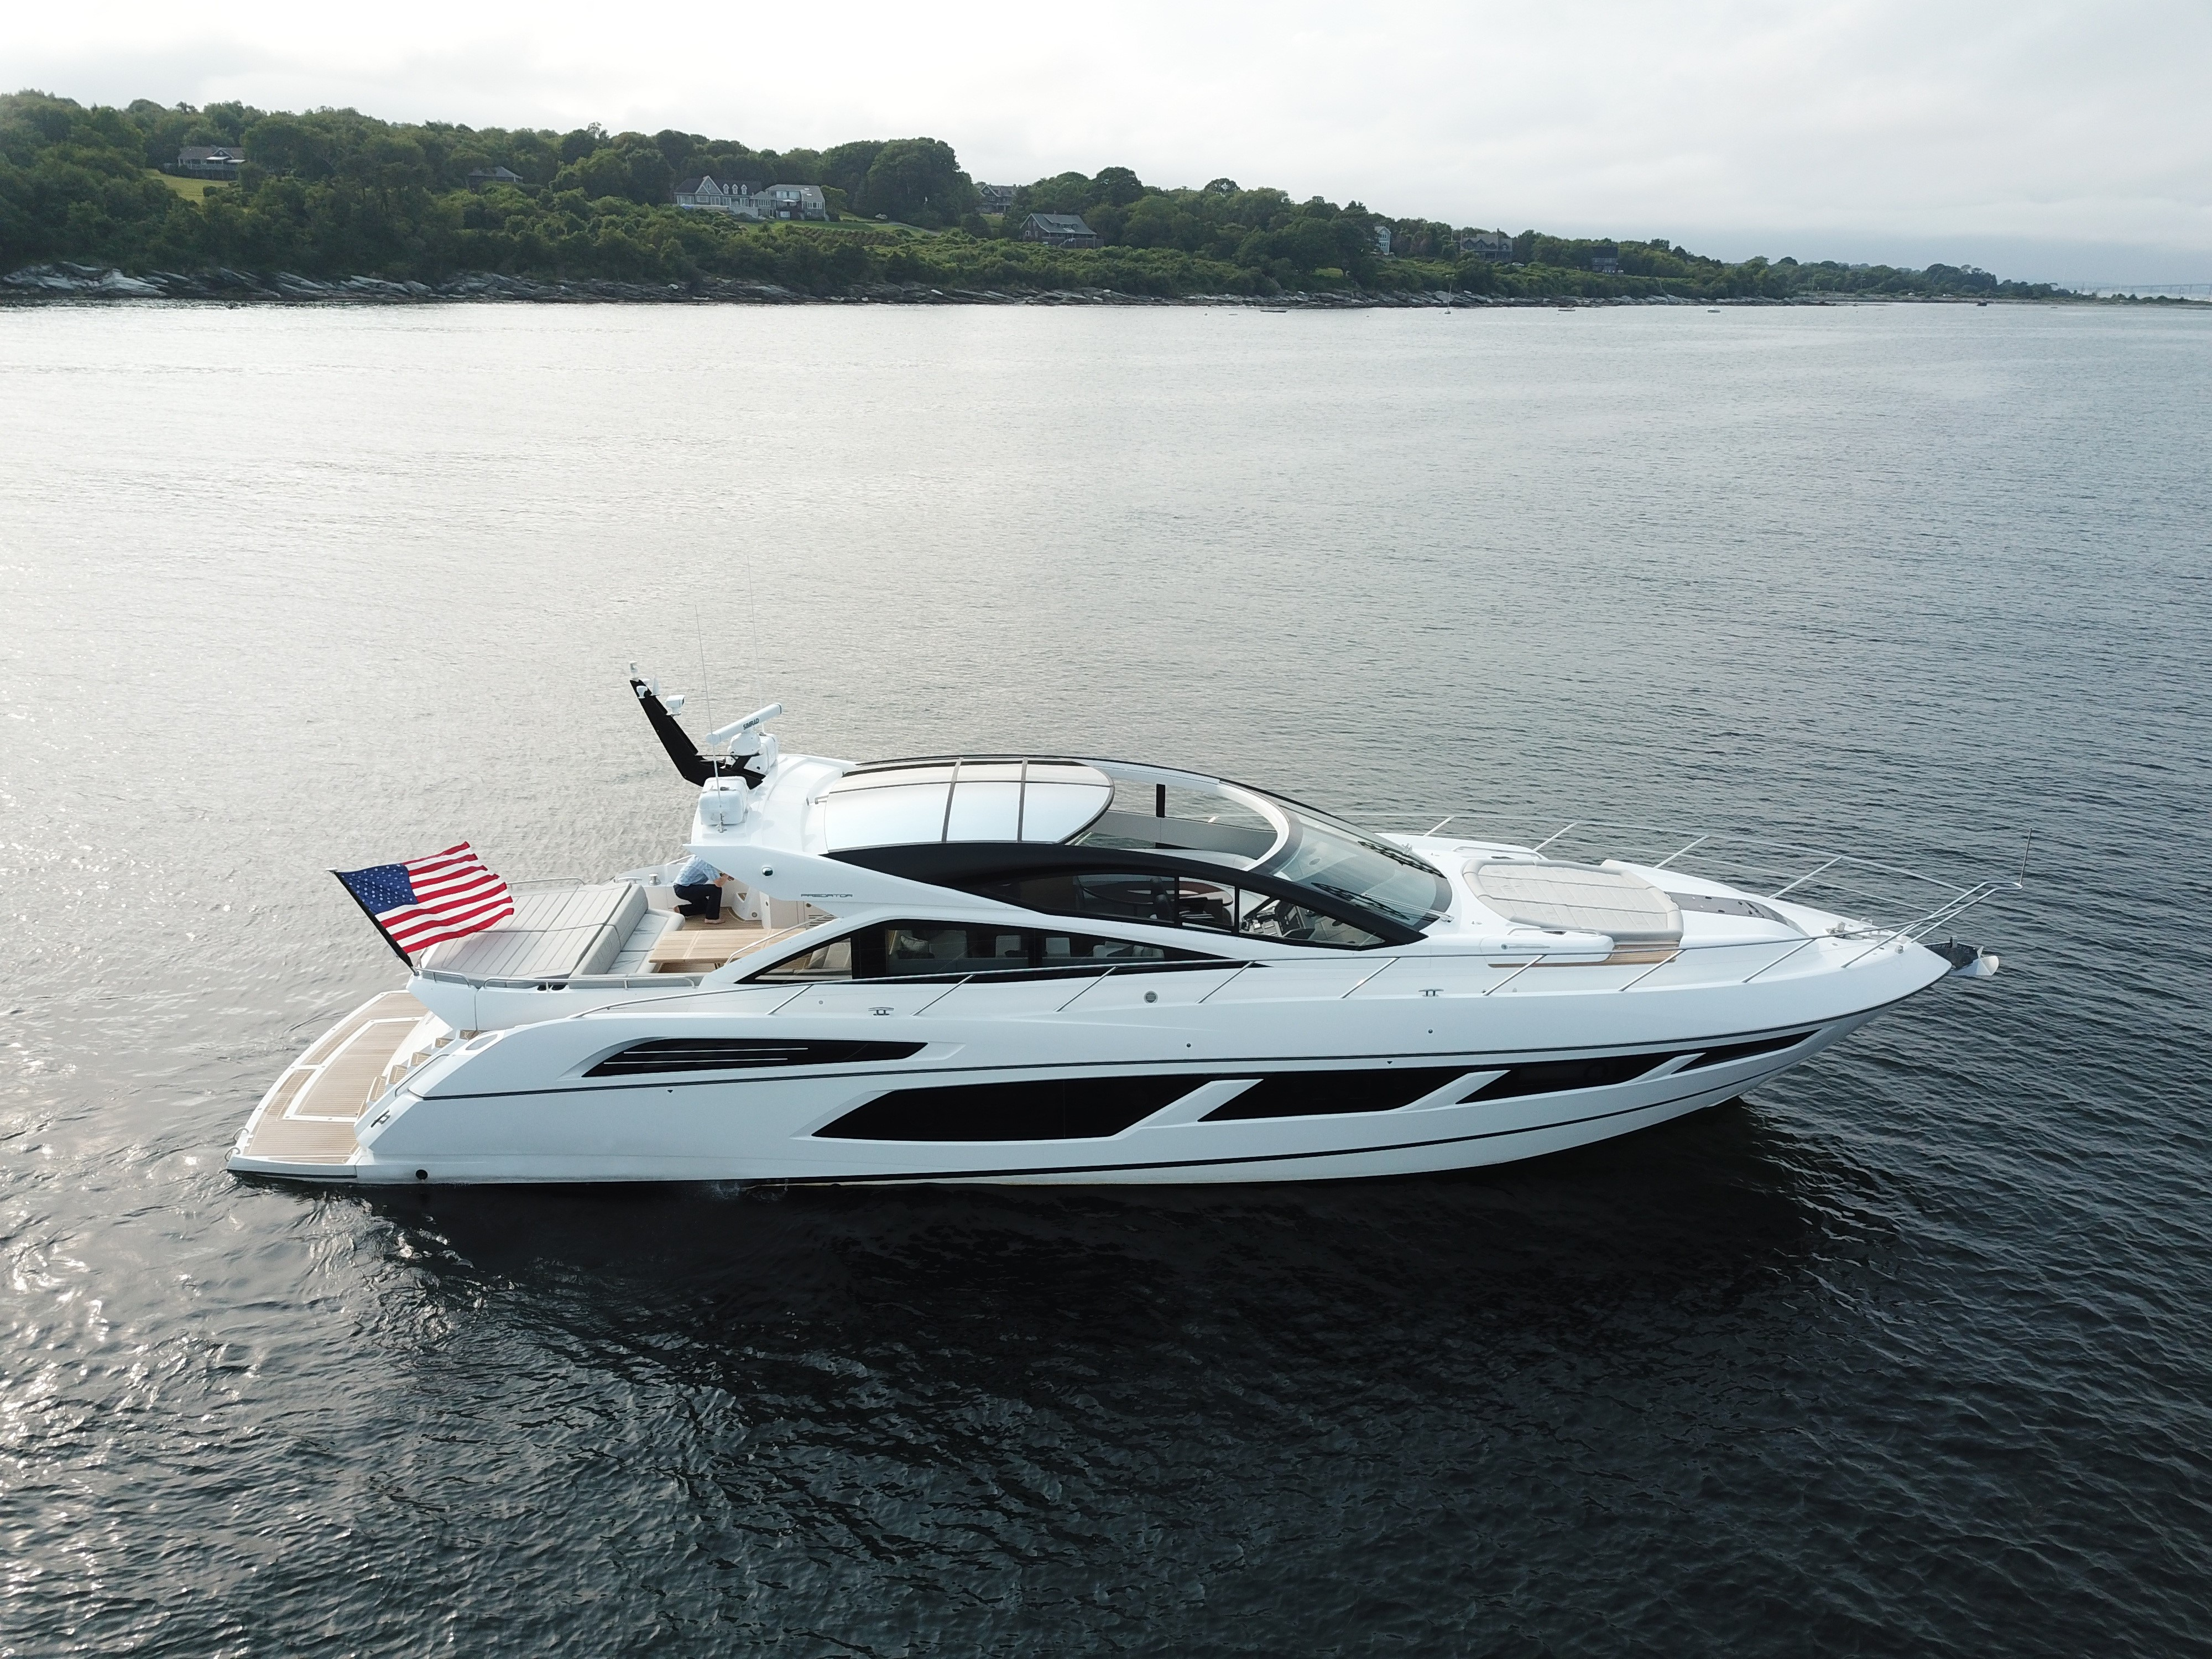 SUMMERWIND specs with detailed specification and builder summary